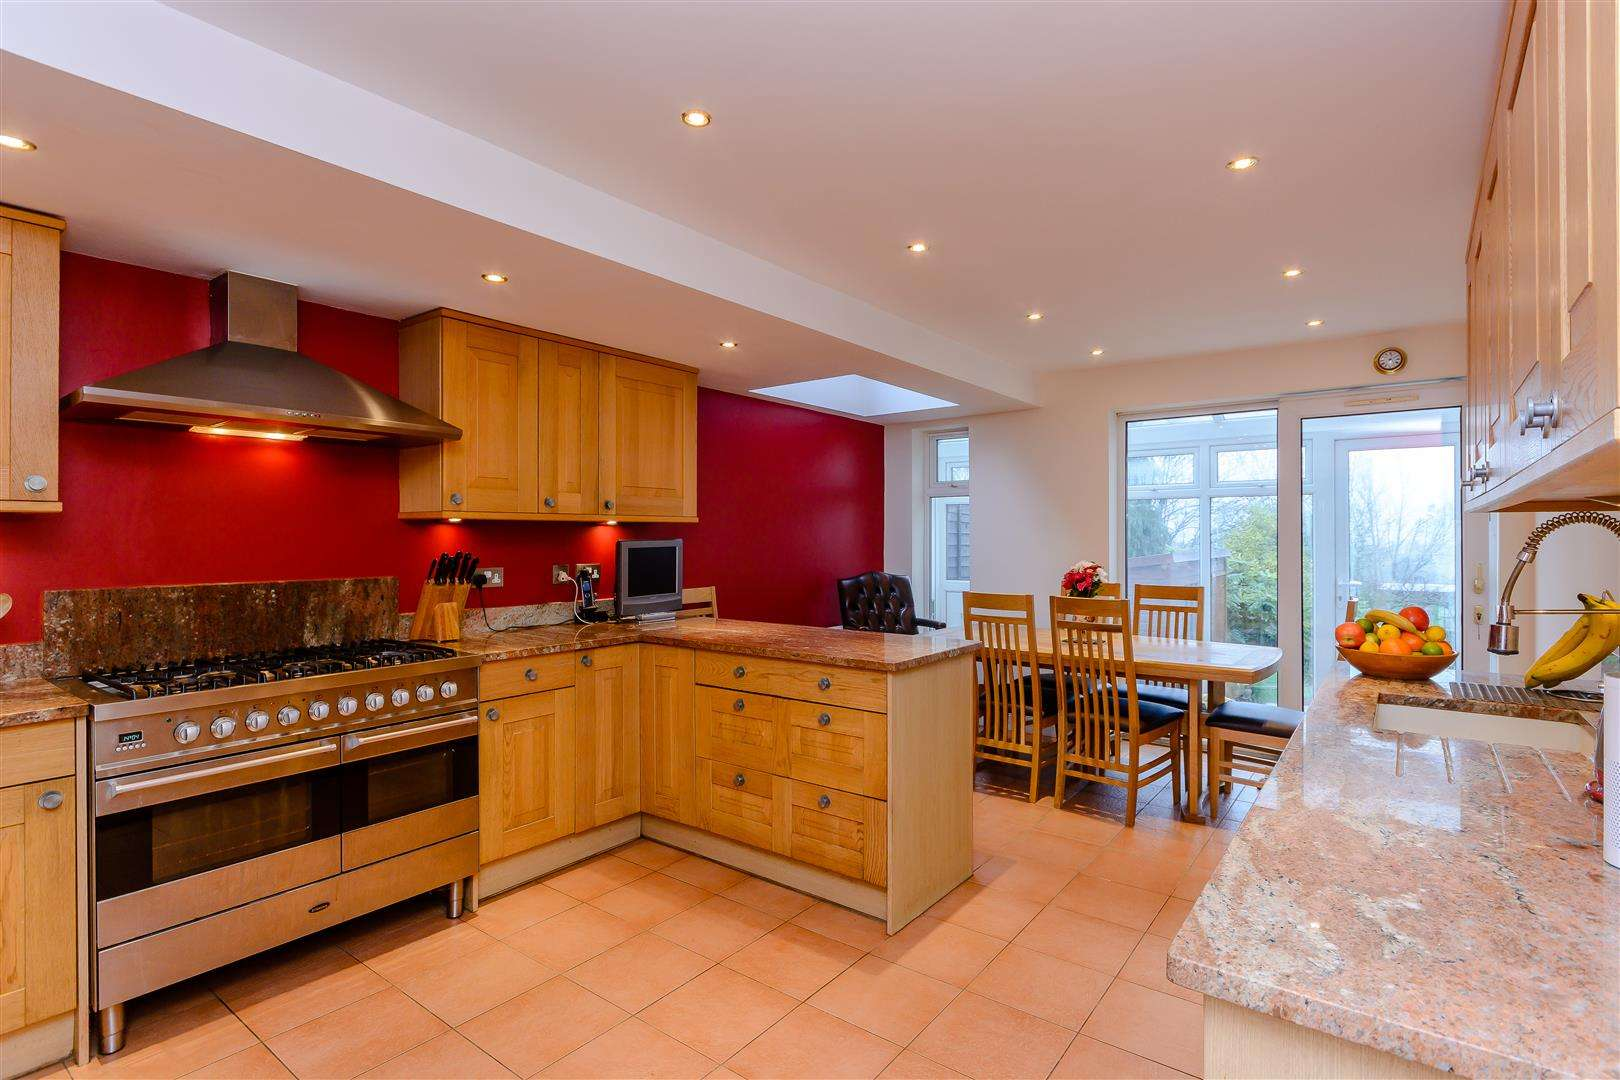 4 bed for sale in Merry Hill Road, Bushey - (Property Image 5)